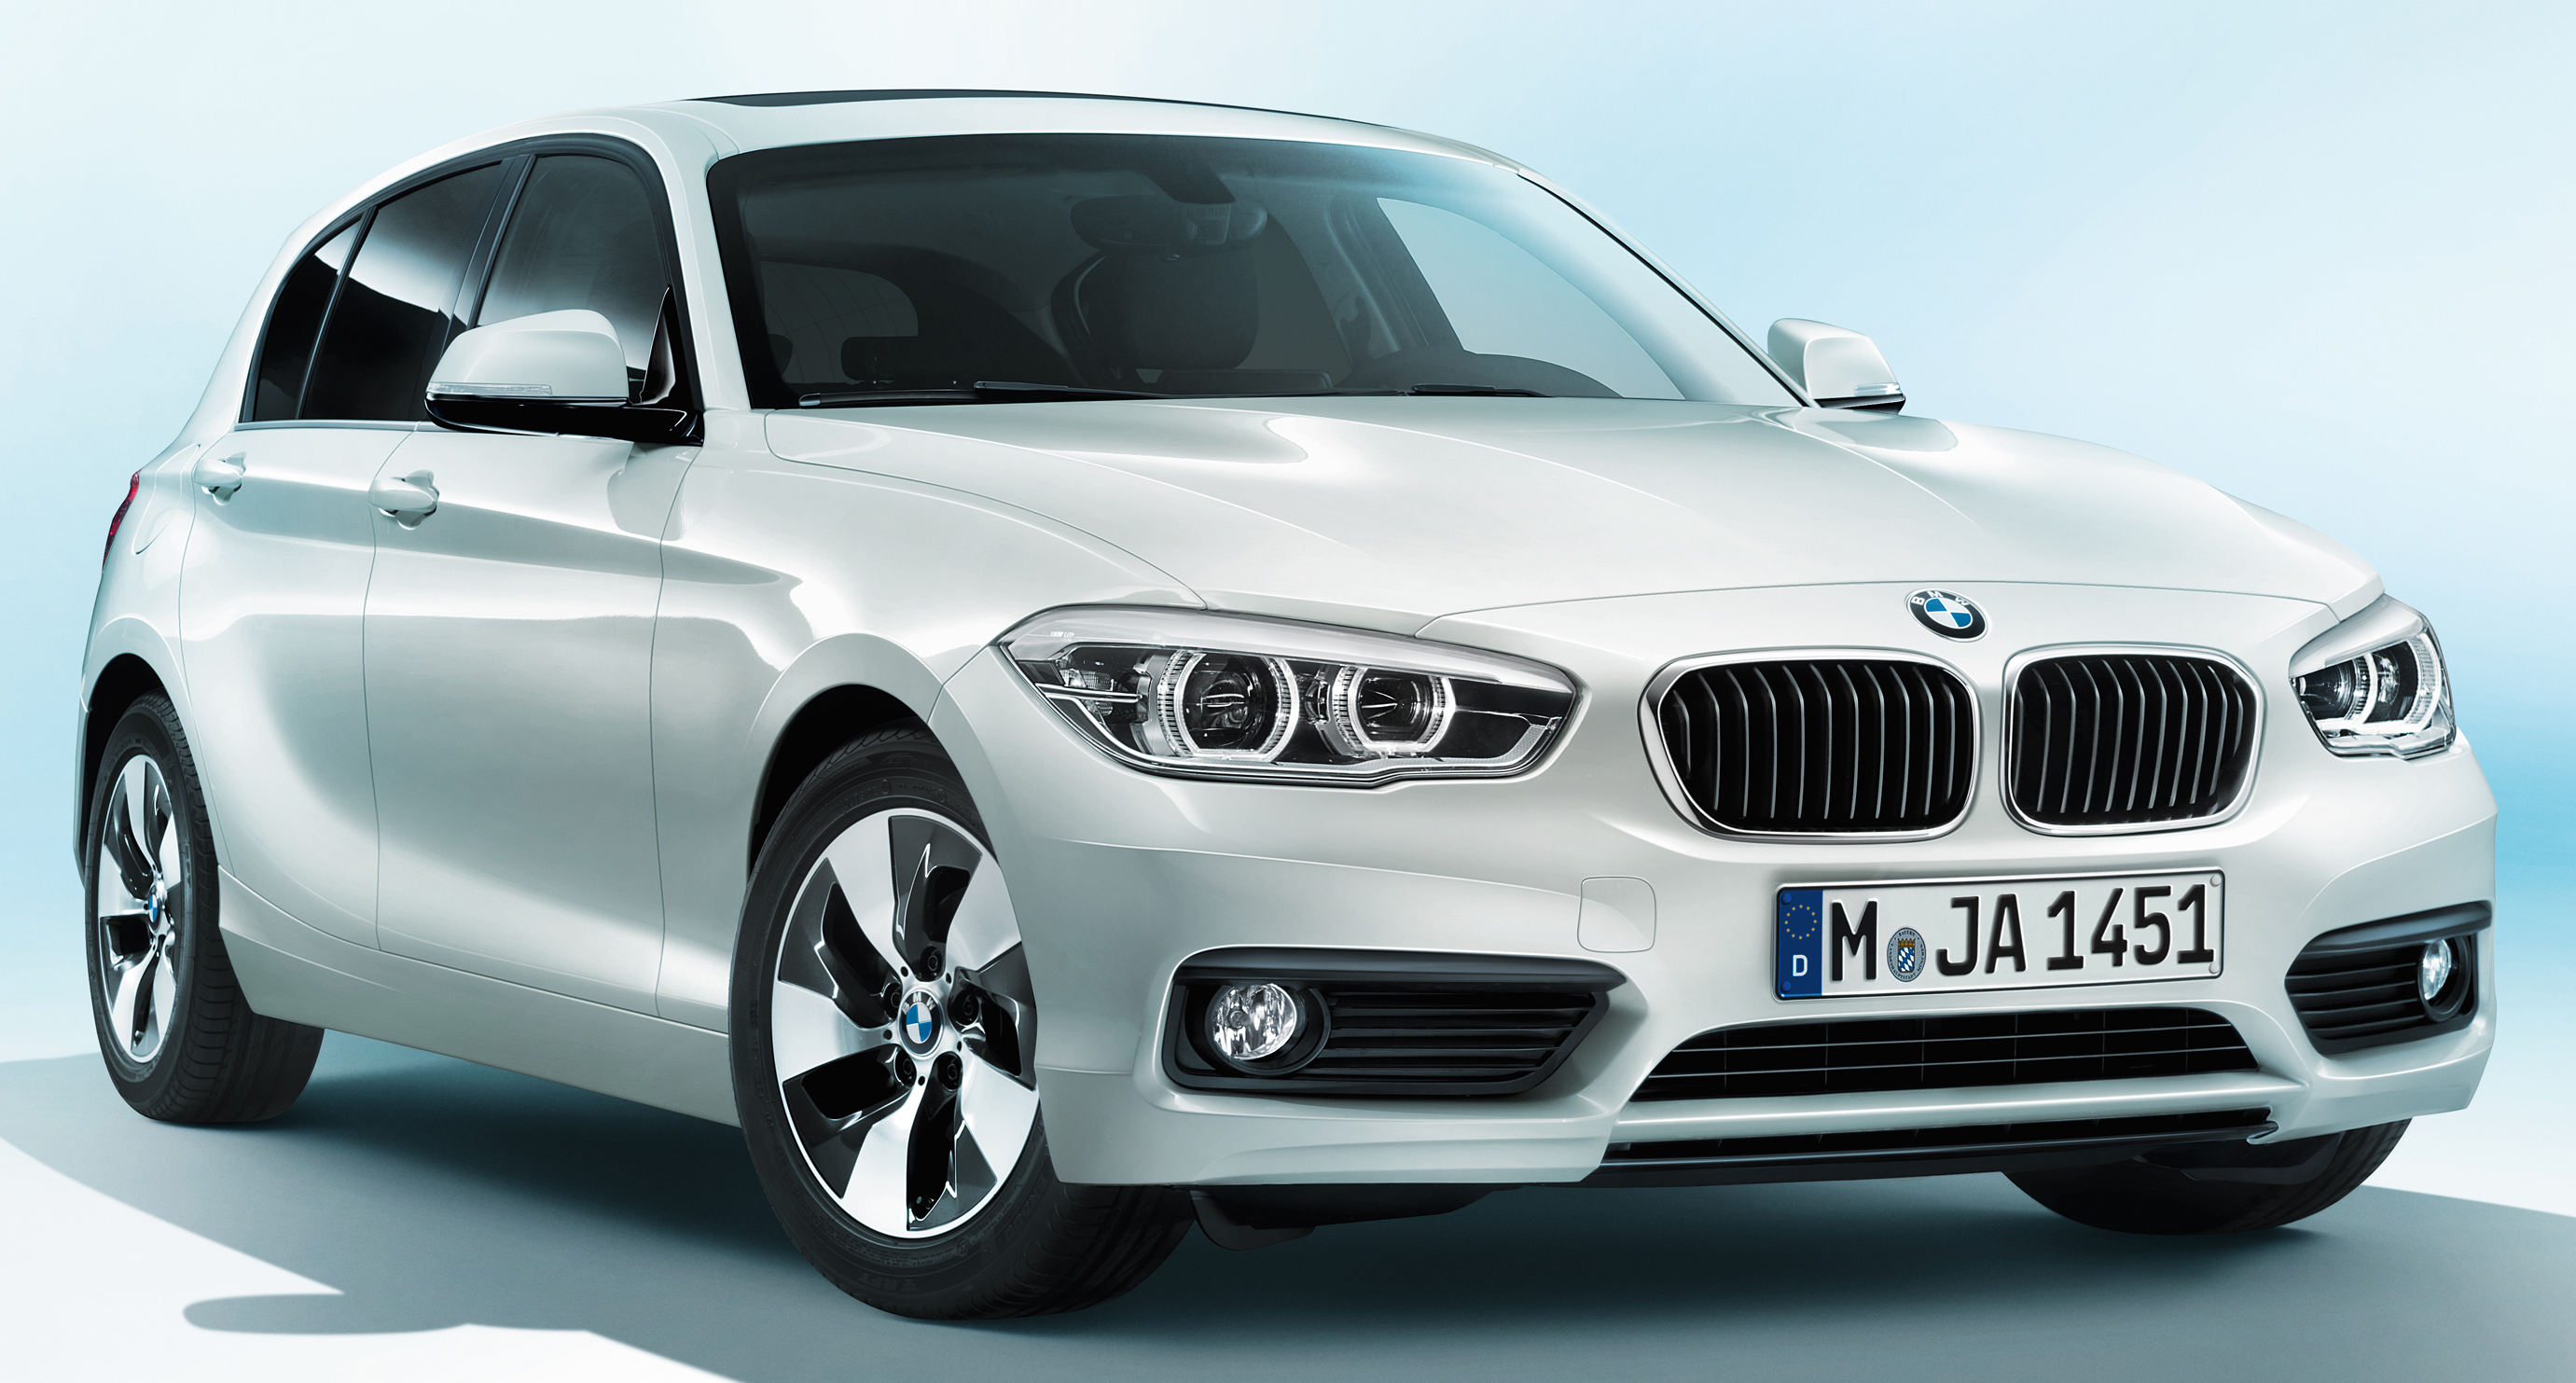 Bmw New Model >> F20 BMW 1 Series facelift unveiled – new face and rear end, 116i and 116d get 1.5 litre three ...